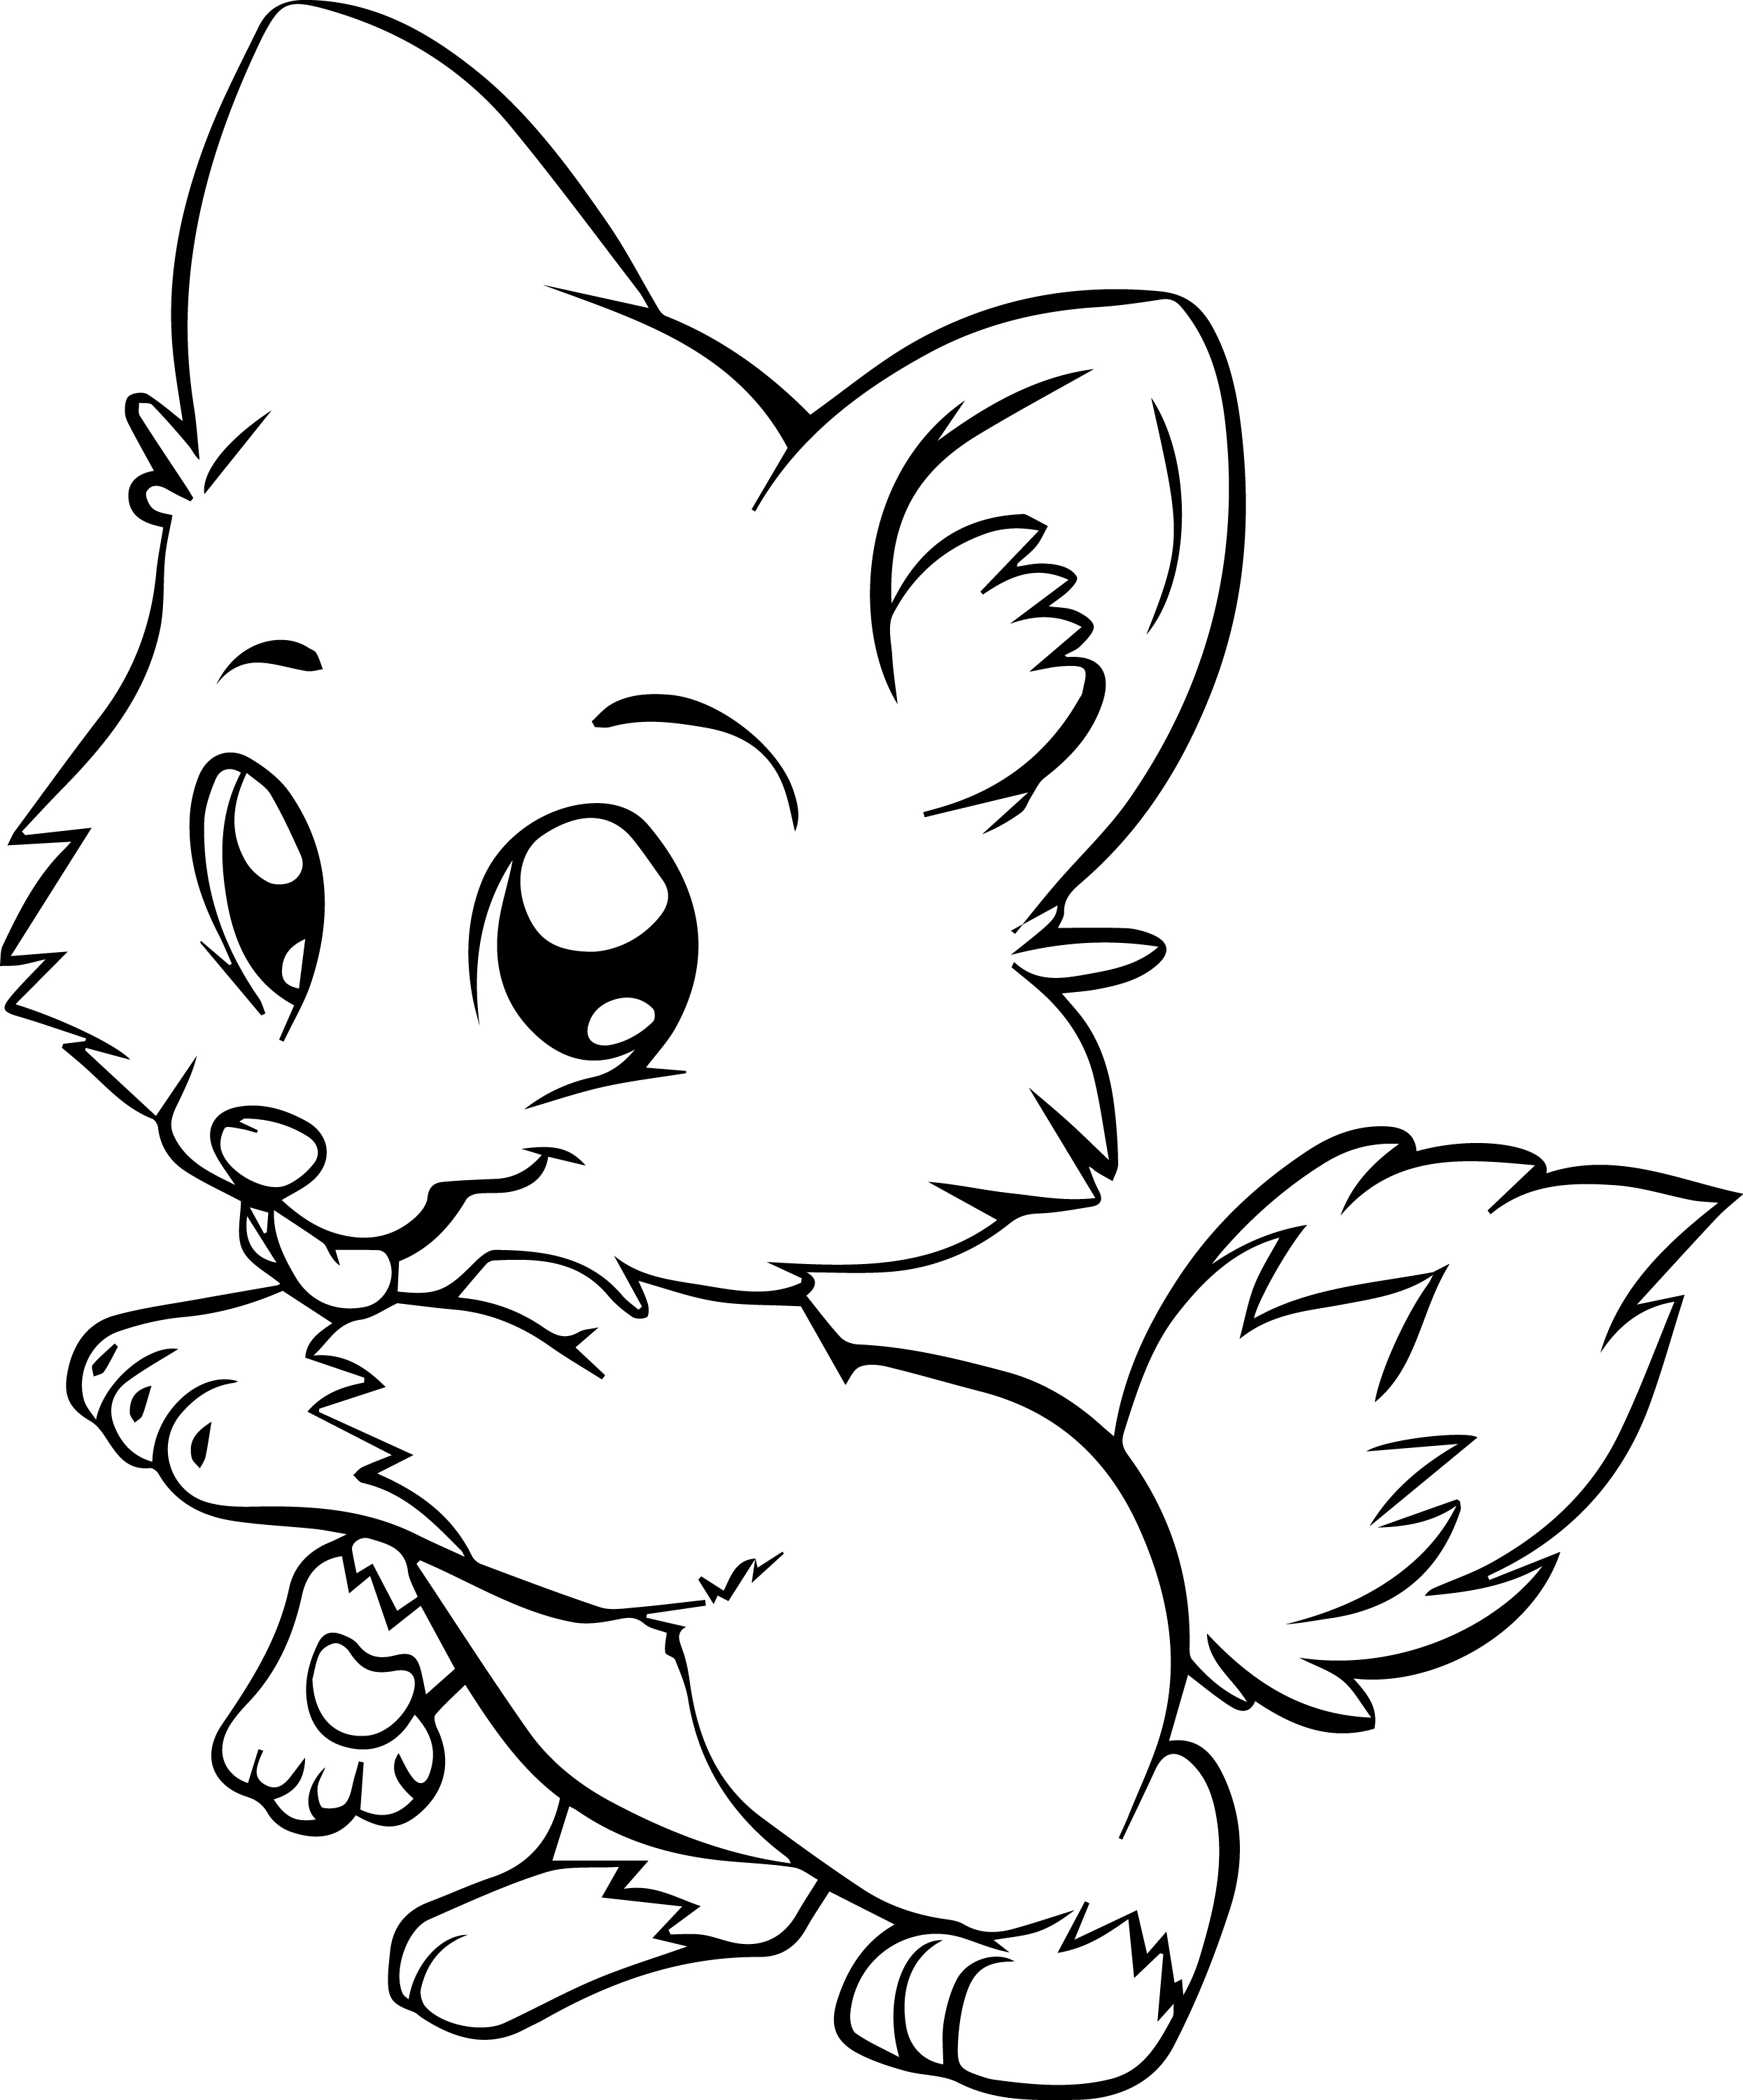 2491x3002 Cute Baby Dog Coloring Pages Collection Coloring For Kids